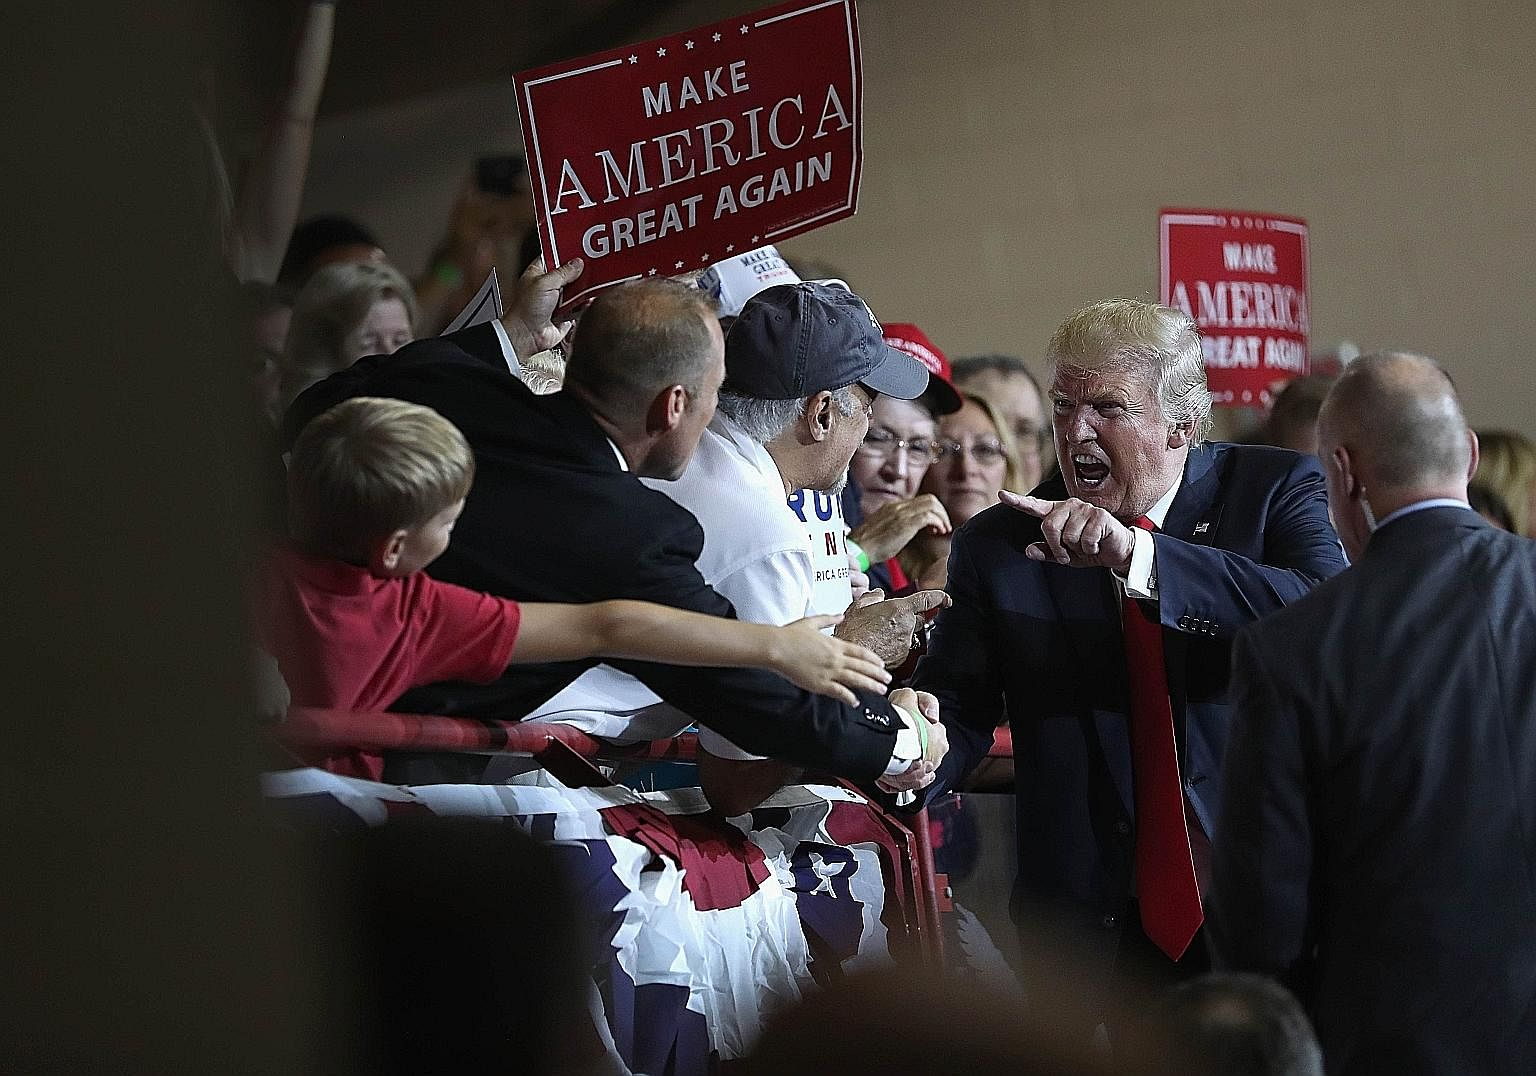 Mr Trump interacting with supporters on Monday after a campaign rally in Pennsylvania. He has specialised in the erratic and abusive, and is using a foghorn to appeal to racist sentiment.